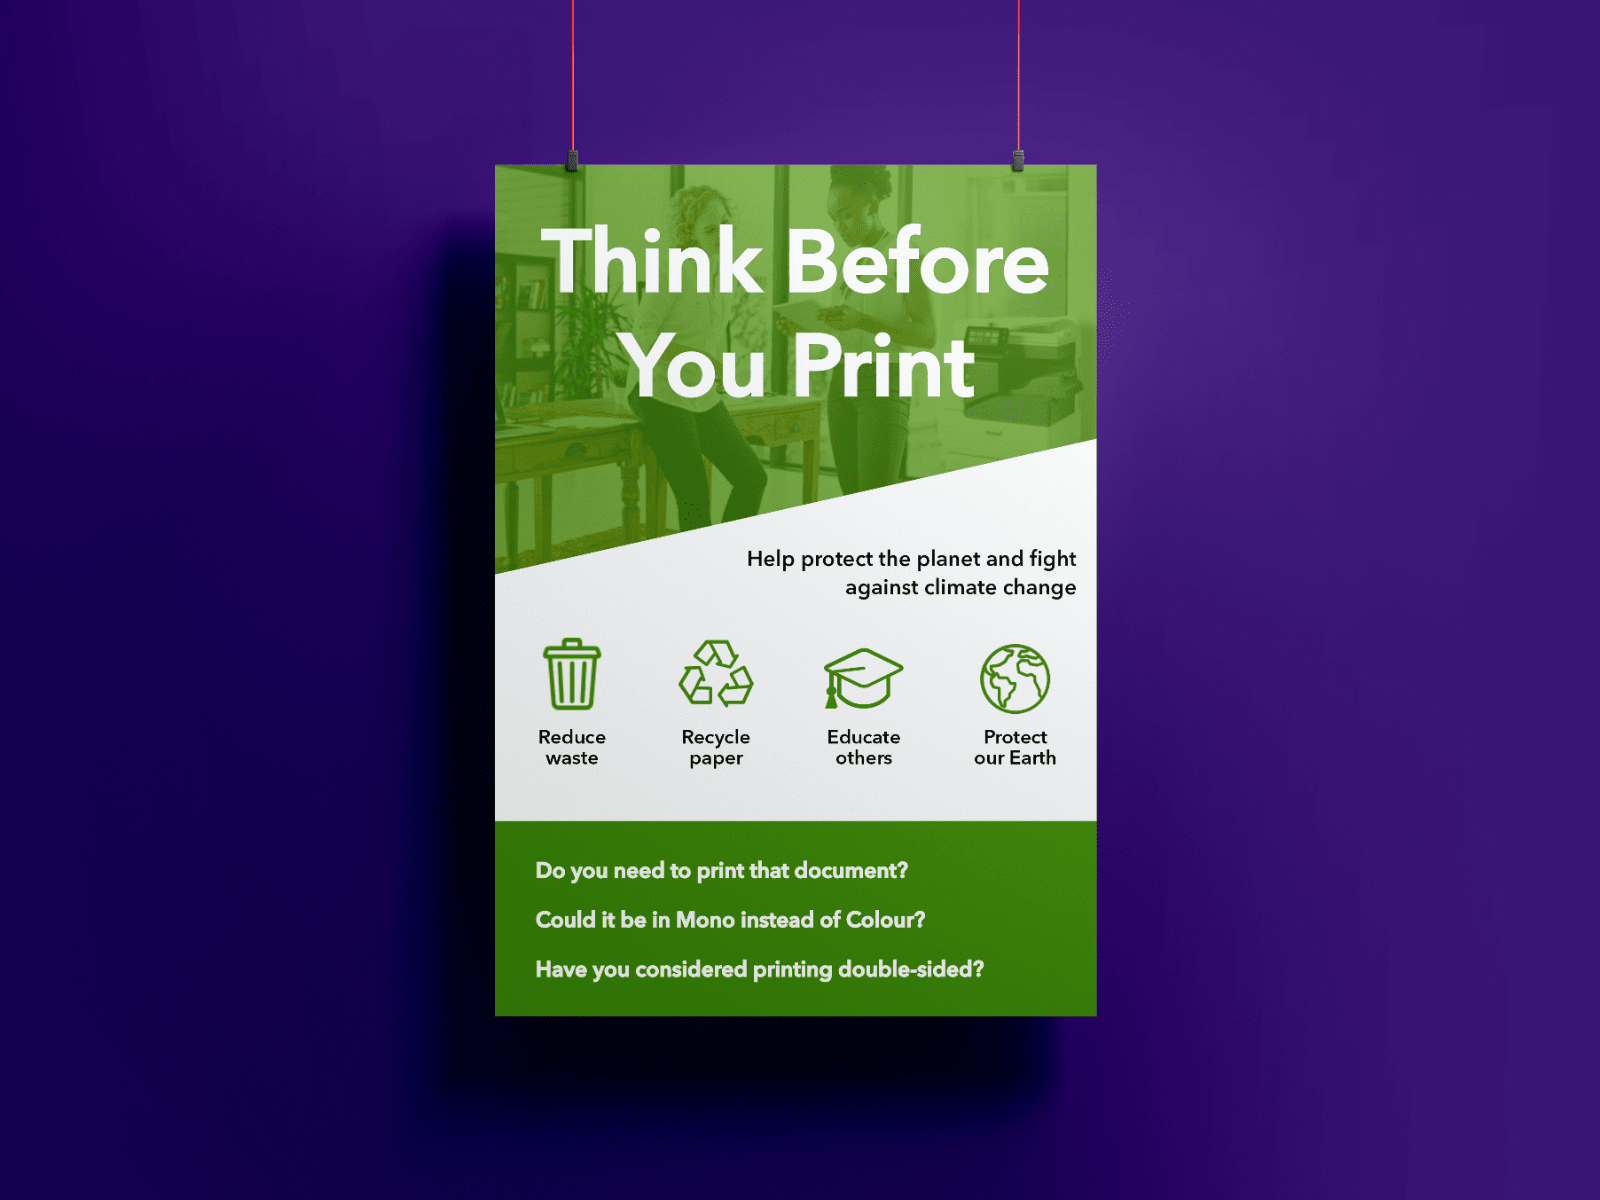 Image in 1 slide of Think Before You Print (1)